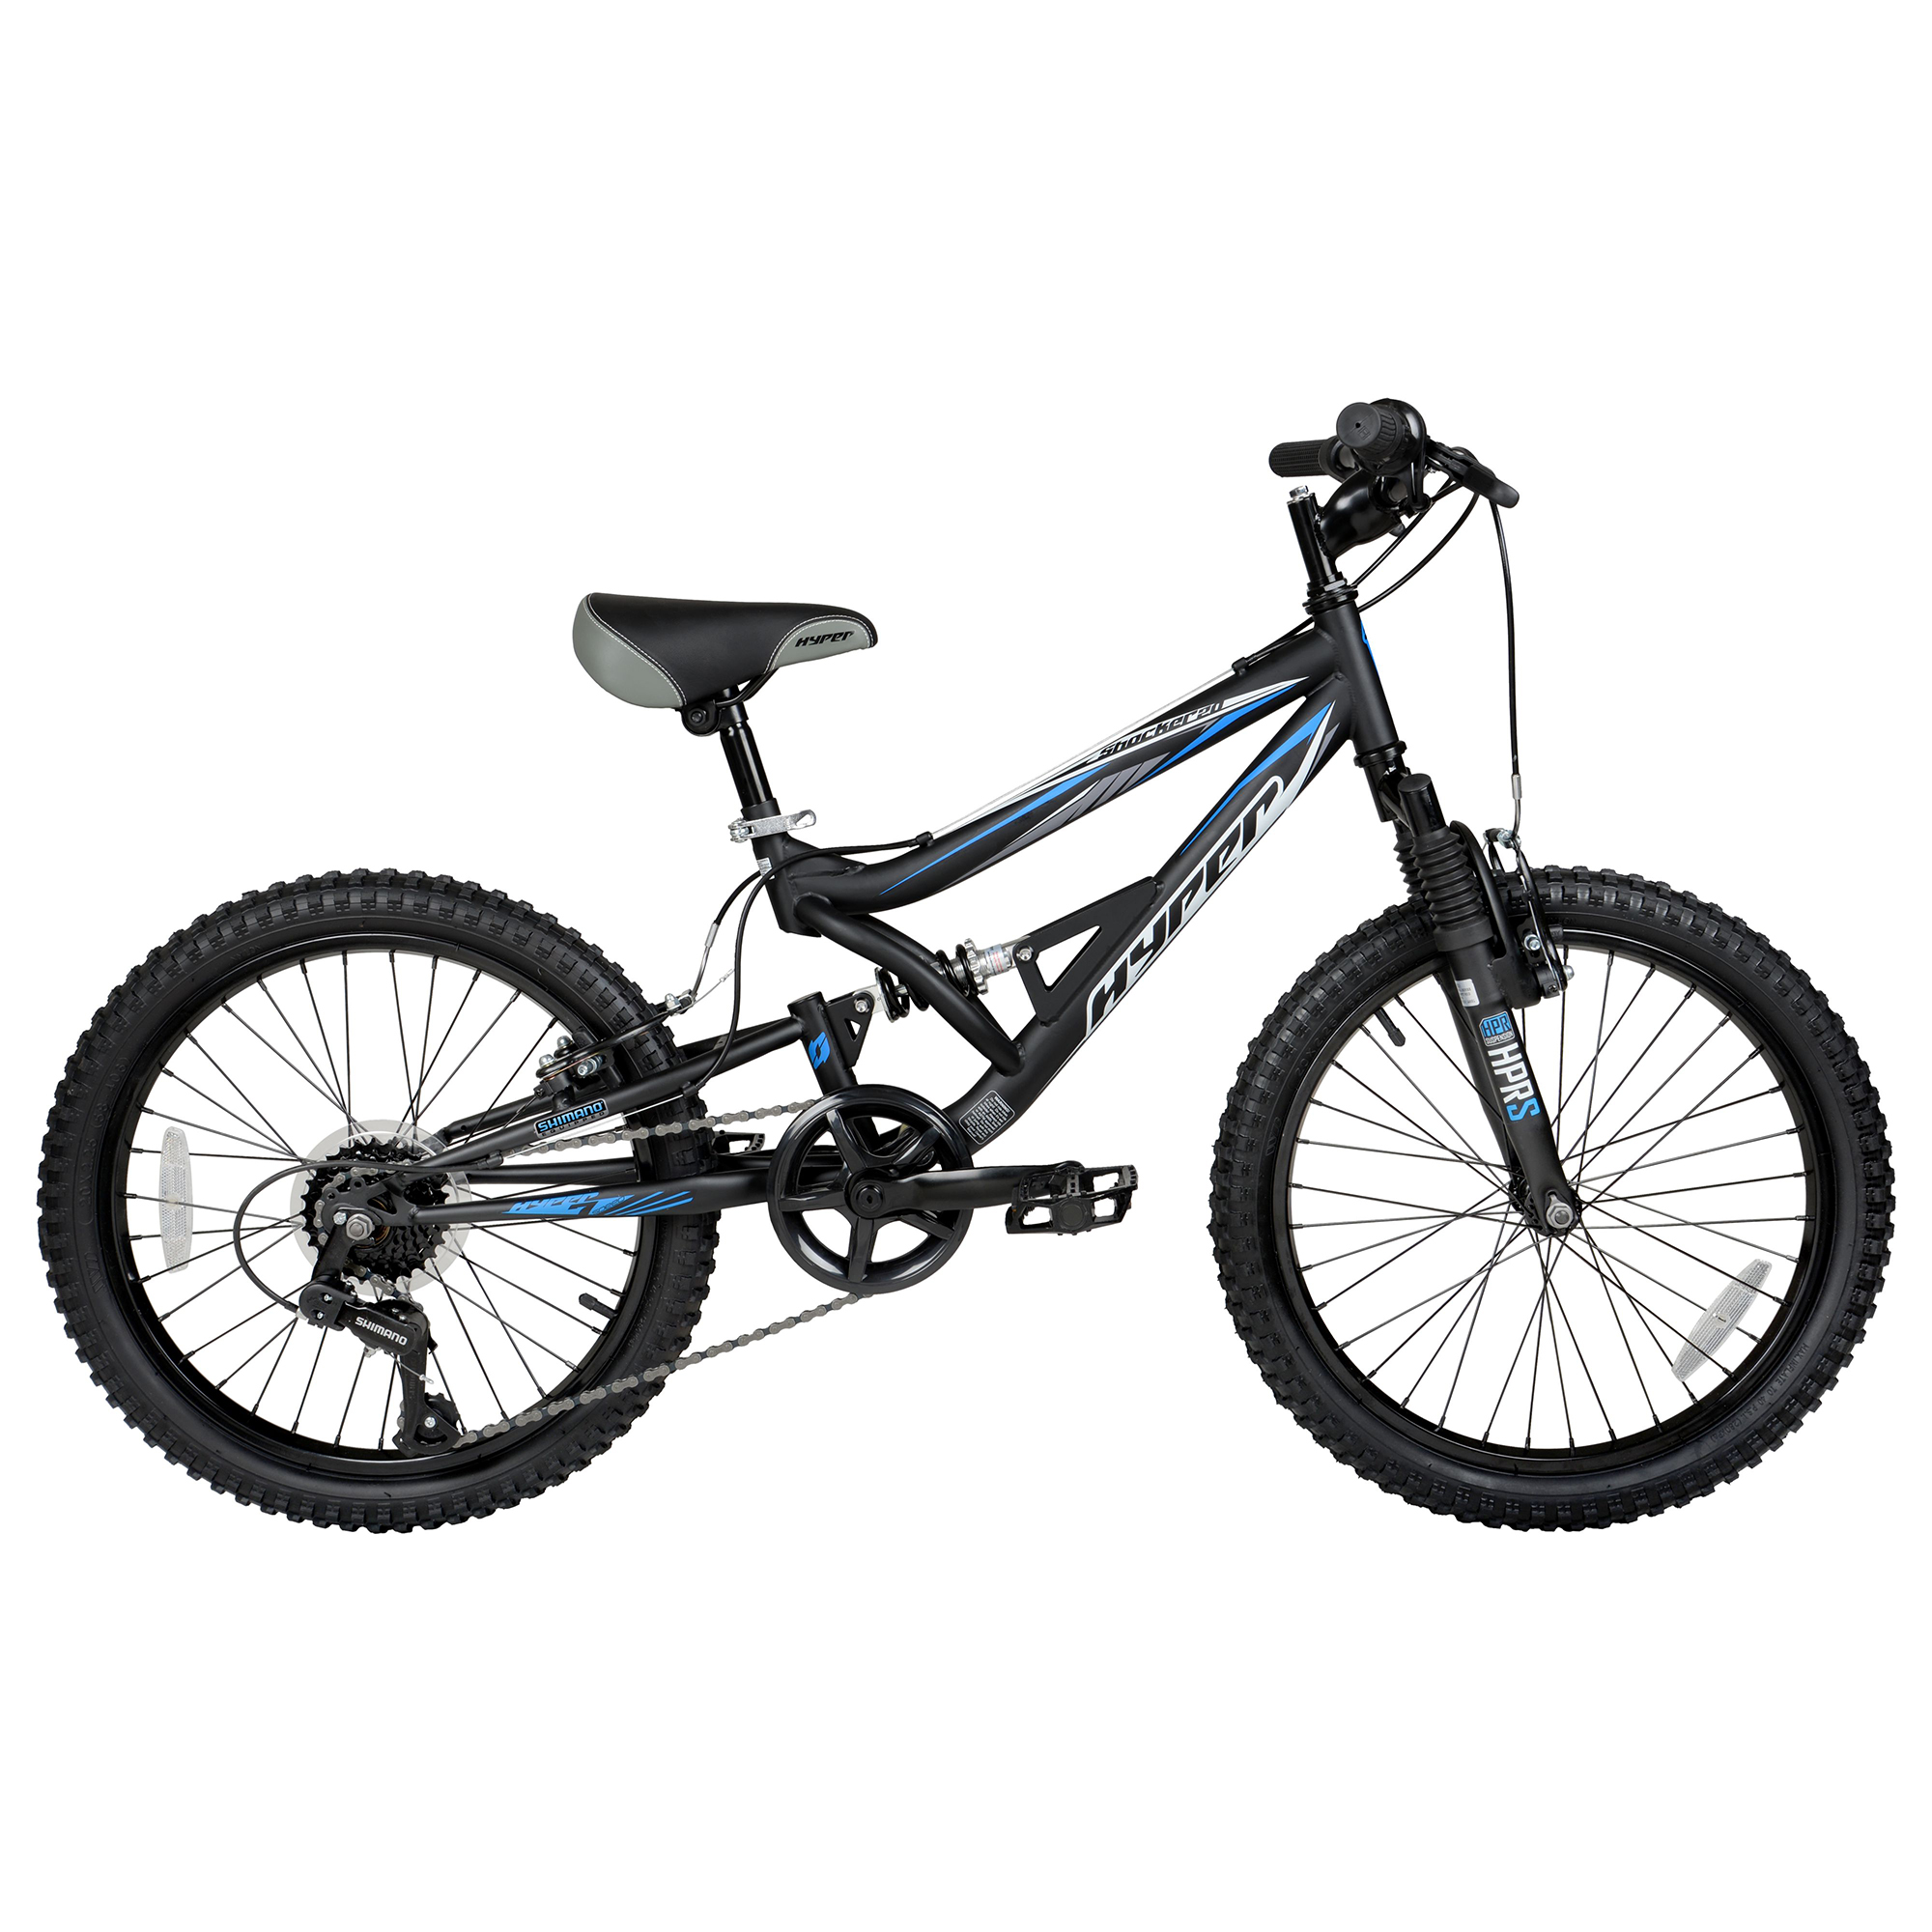 Full Suspension Bike Diagram 28 Wiring Images And A Road Http Enwikipediaorg Wiki Listofbicycleparts 7e64a30e A4eb 427d 8db8 315d5d03193c 1c4cea8e123133521b78af10877d53dfcodnheight450odnwidth450odnbgffffff 20